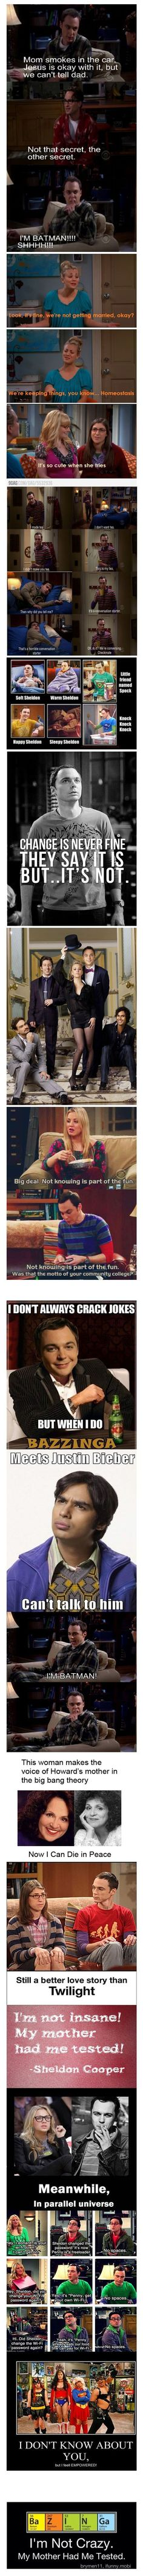 Mom smokes in the car. Jesus is okay with it, but we cant tell Dad. -- Sheldon Cooper